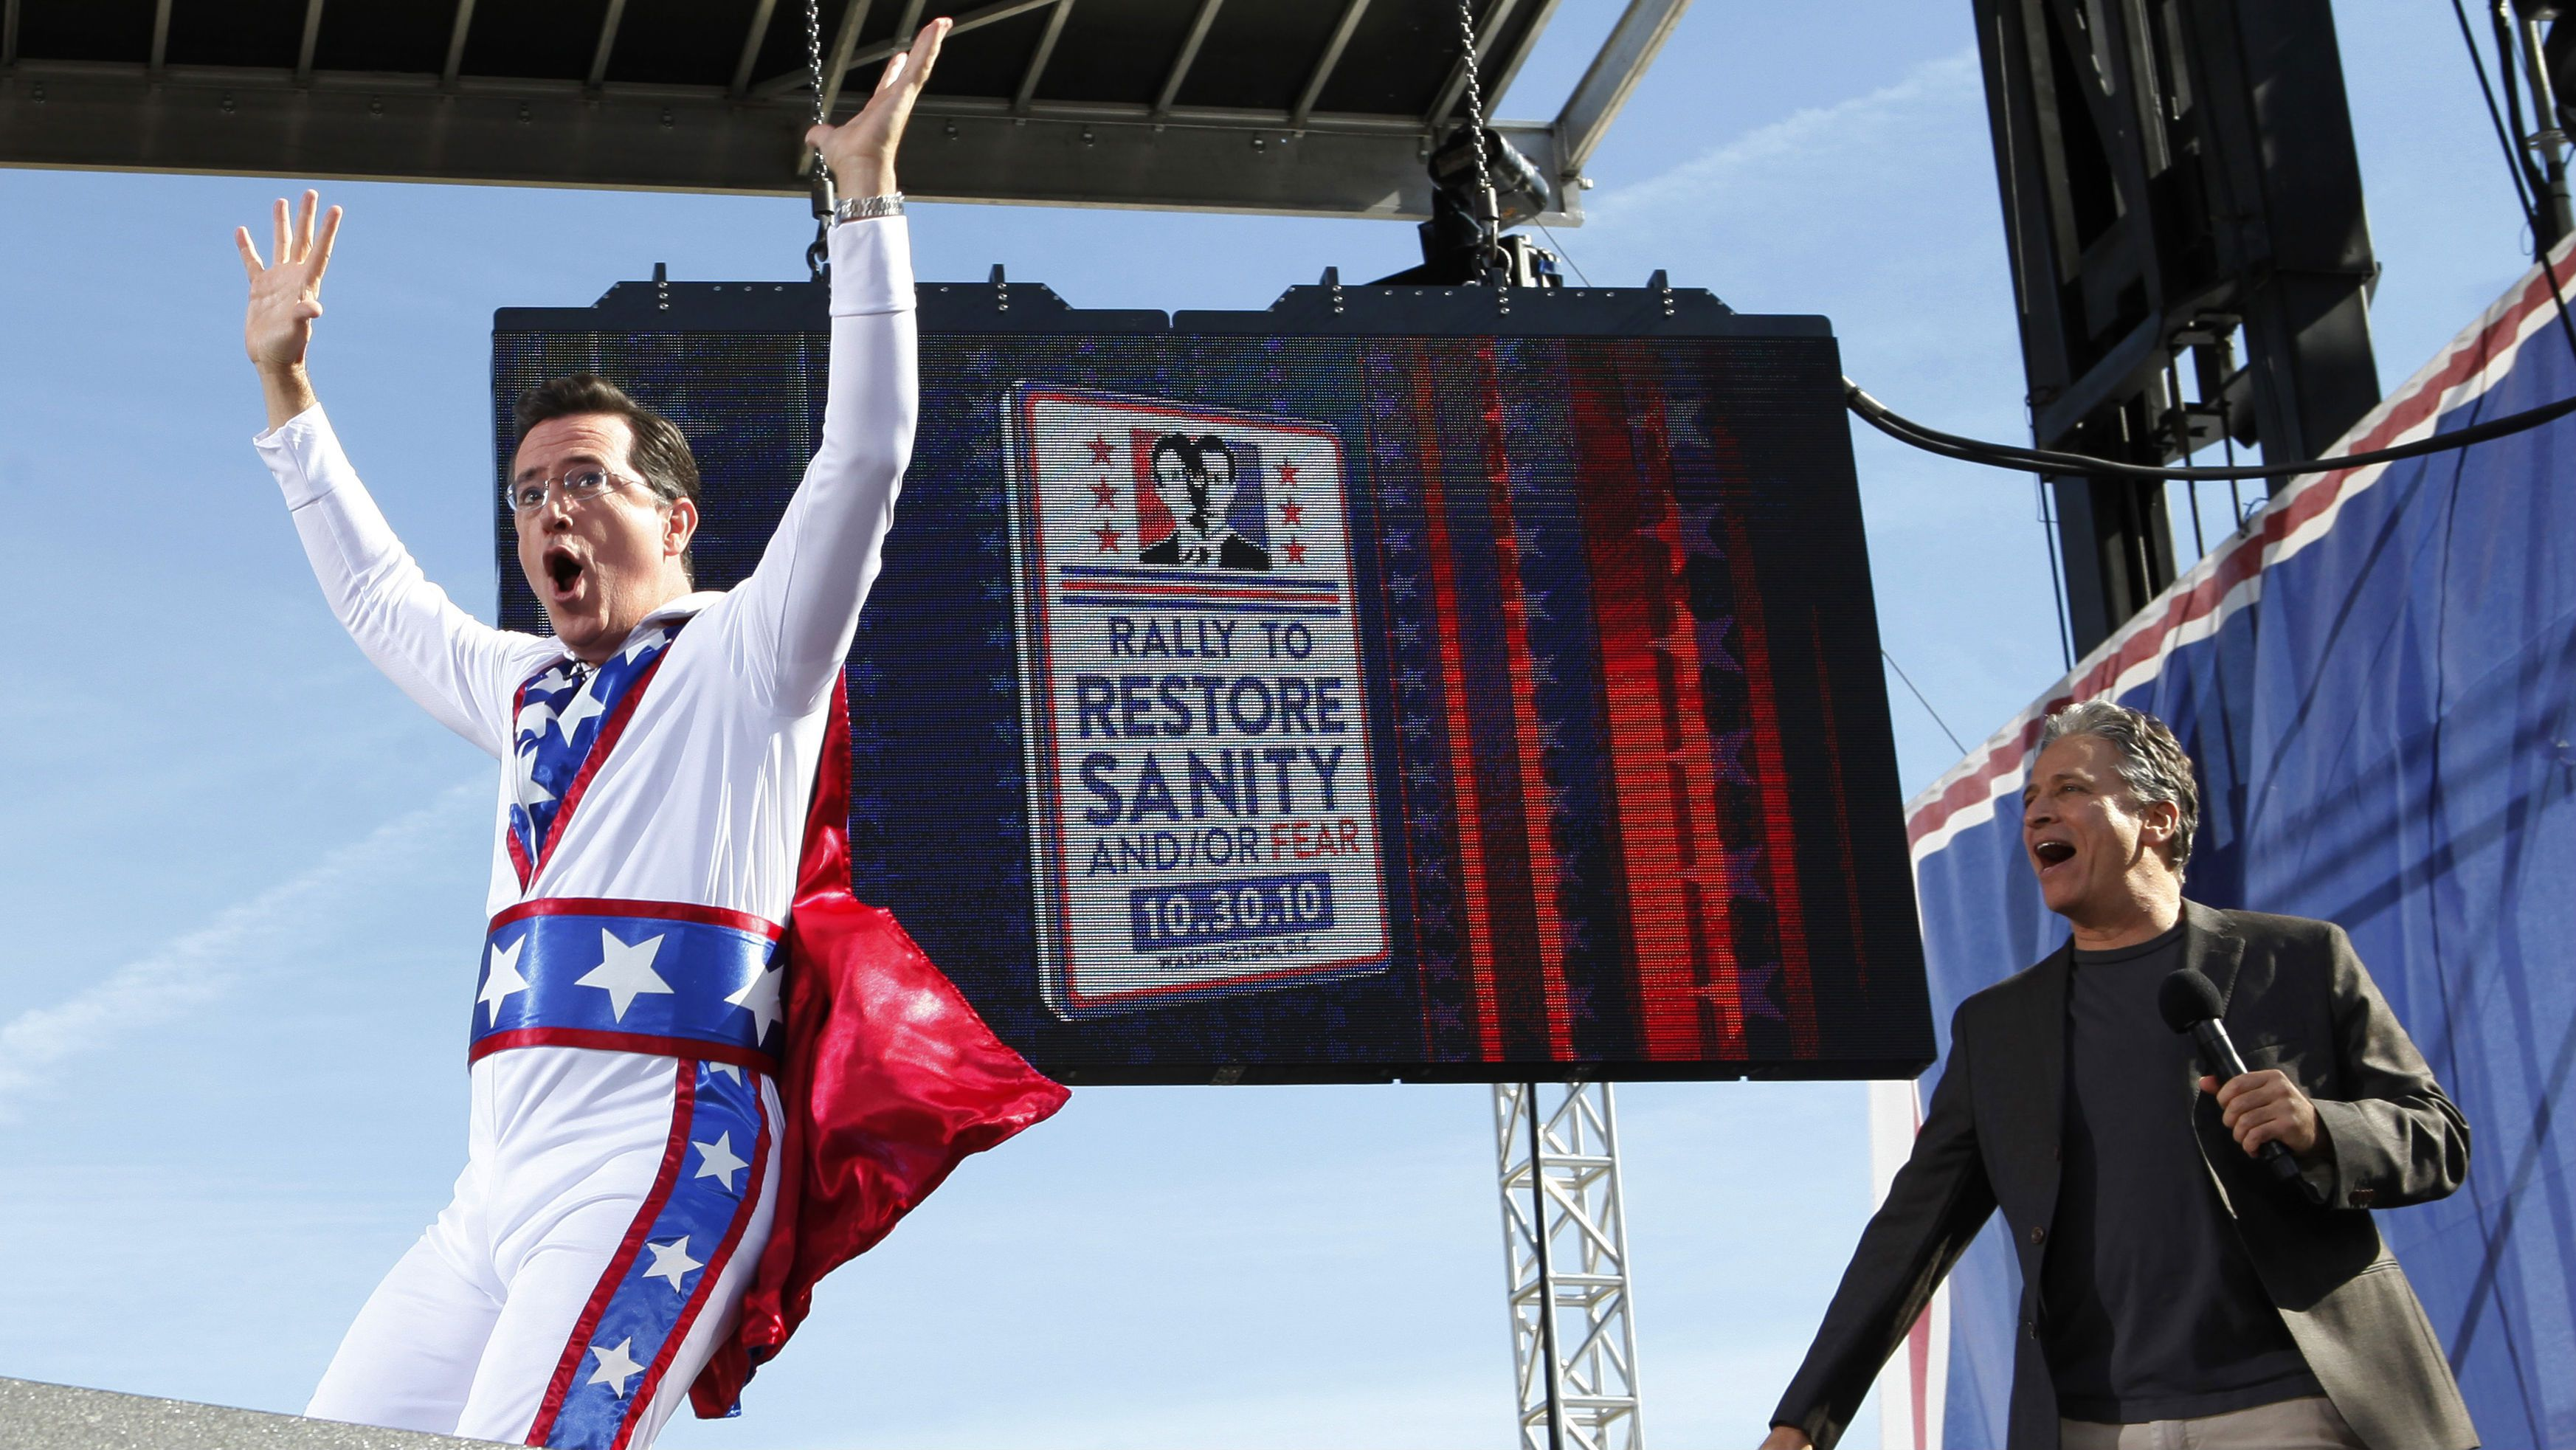 """Comedian Stephen Colbert (L) runs across the stage in front of fellow rally host Jon Stewart during their """"Rally to Restore Sanity and/or Fear"""" on the National Mall in Washington October 30, 2010. The rally is a counterpoint to recent partisan political rallies on both ends of the U.S. political spectrum held in anticipation of the November 2nd Congressional midterm elections. REUTERS/Jim Bourg (UNITED STATES - Tags: POLITICS ENTERTAINMENT SOCIETY CIVIL UNREST)"""